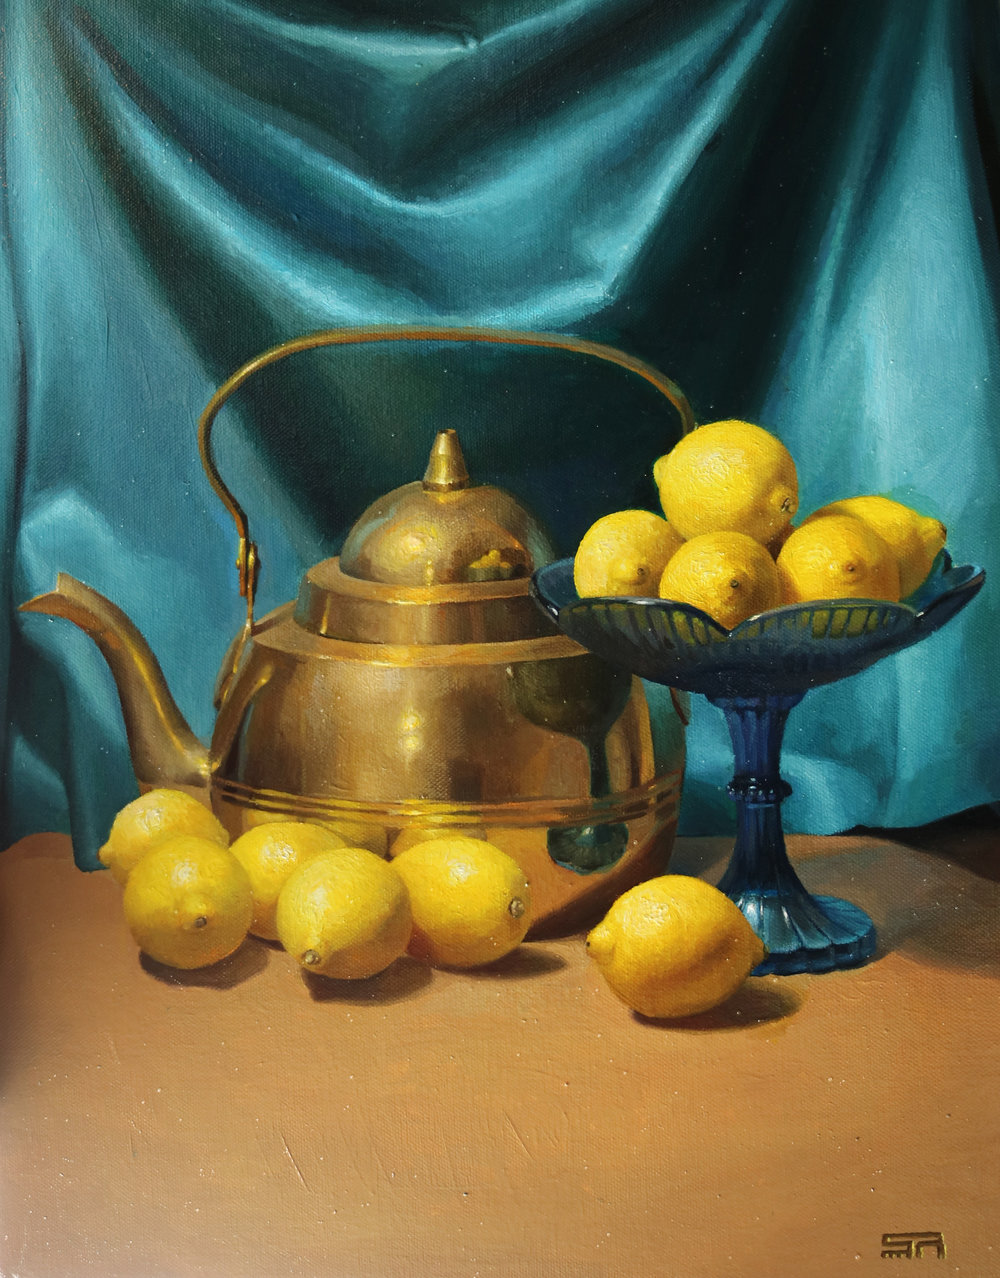 Yellow lemons, Gold kettle